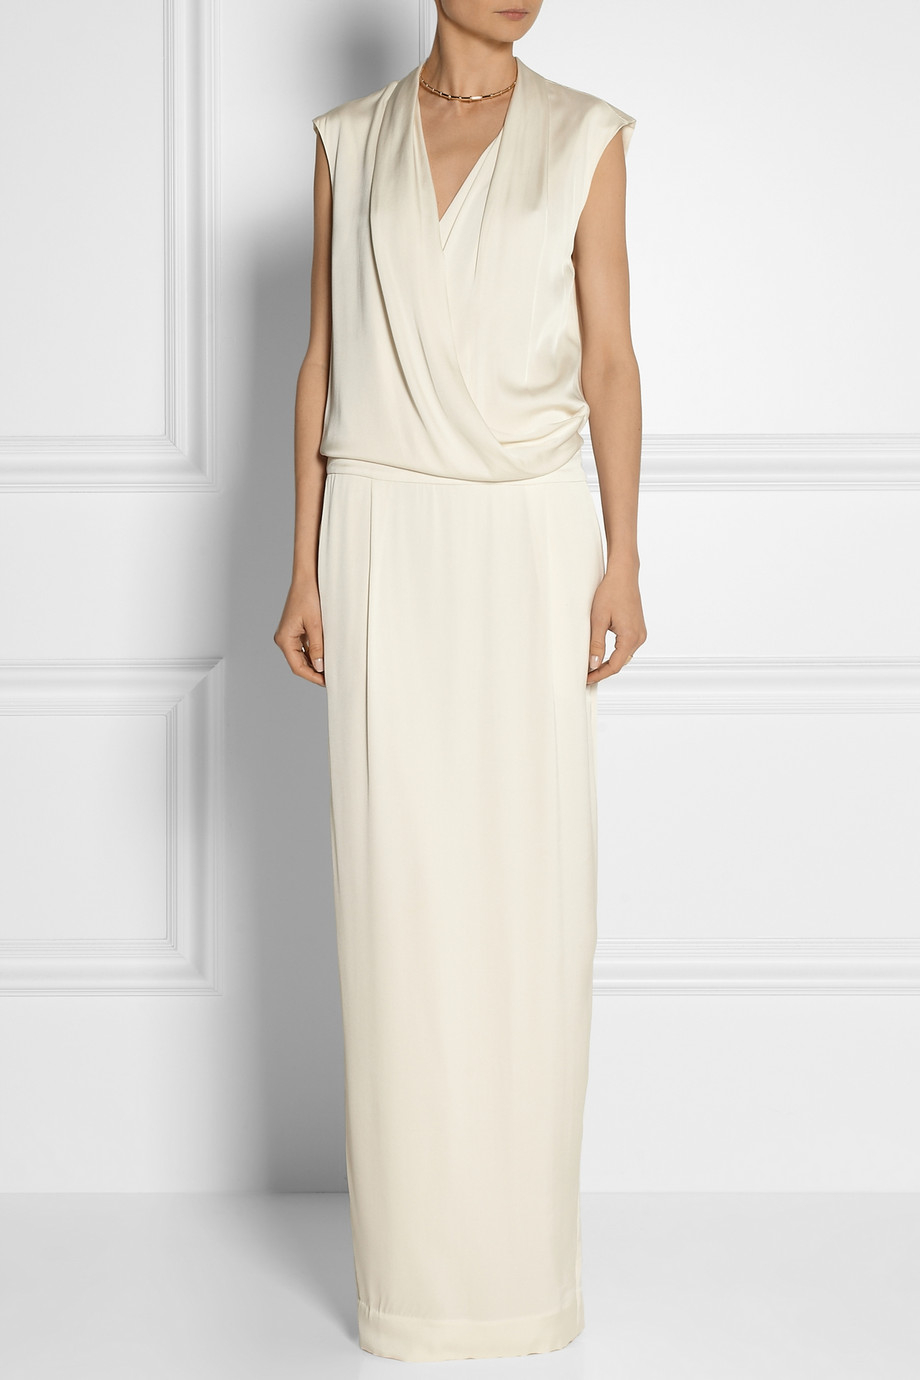 Malene birger dress white and gold